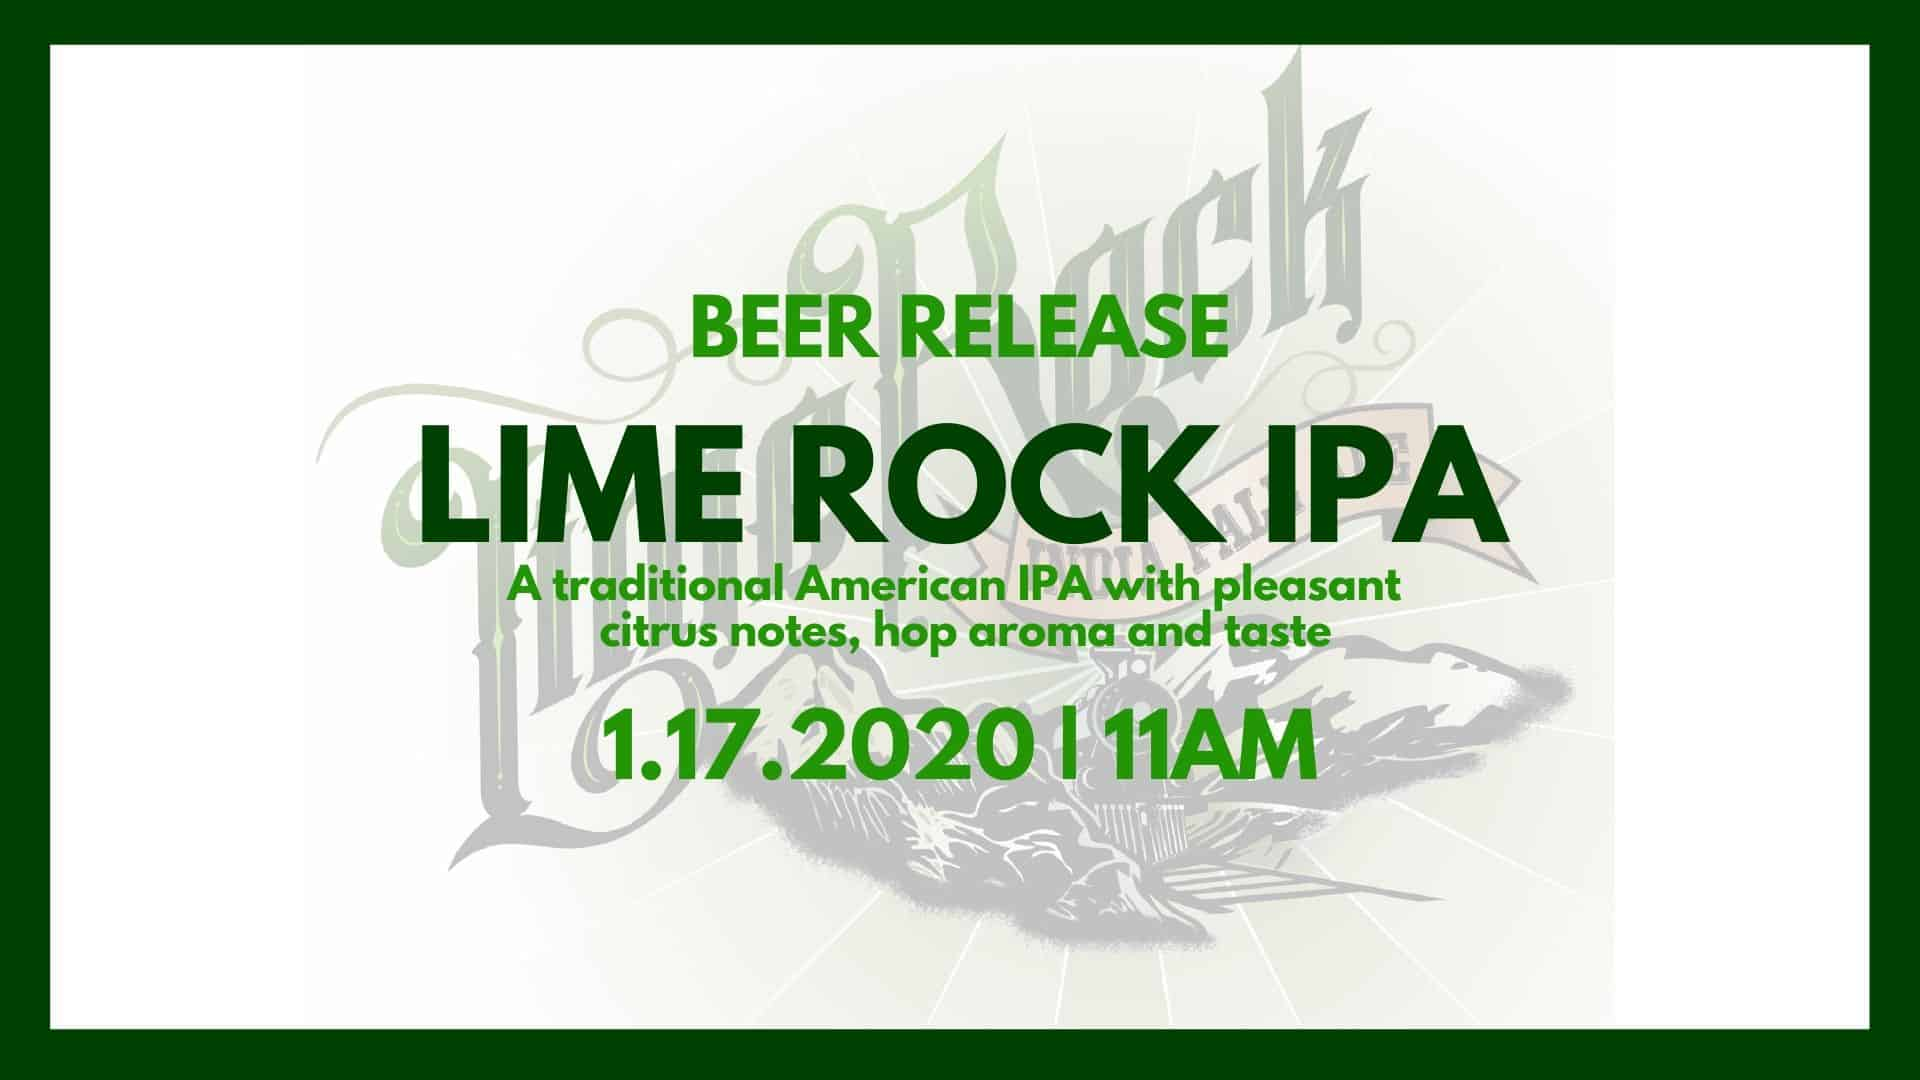 Lime Rock IPA Release. Traditional American IPA with citrus notes and aromas plus a good amount of hop bitterness.